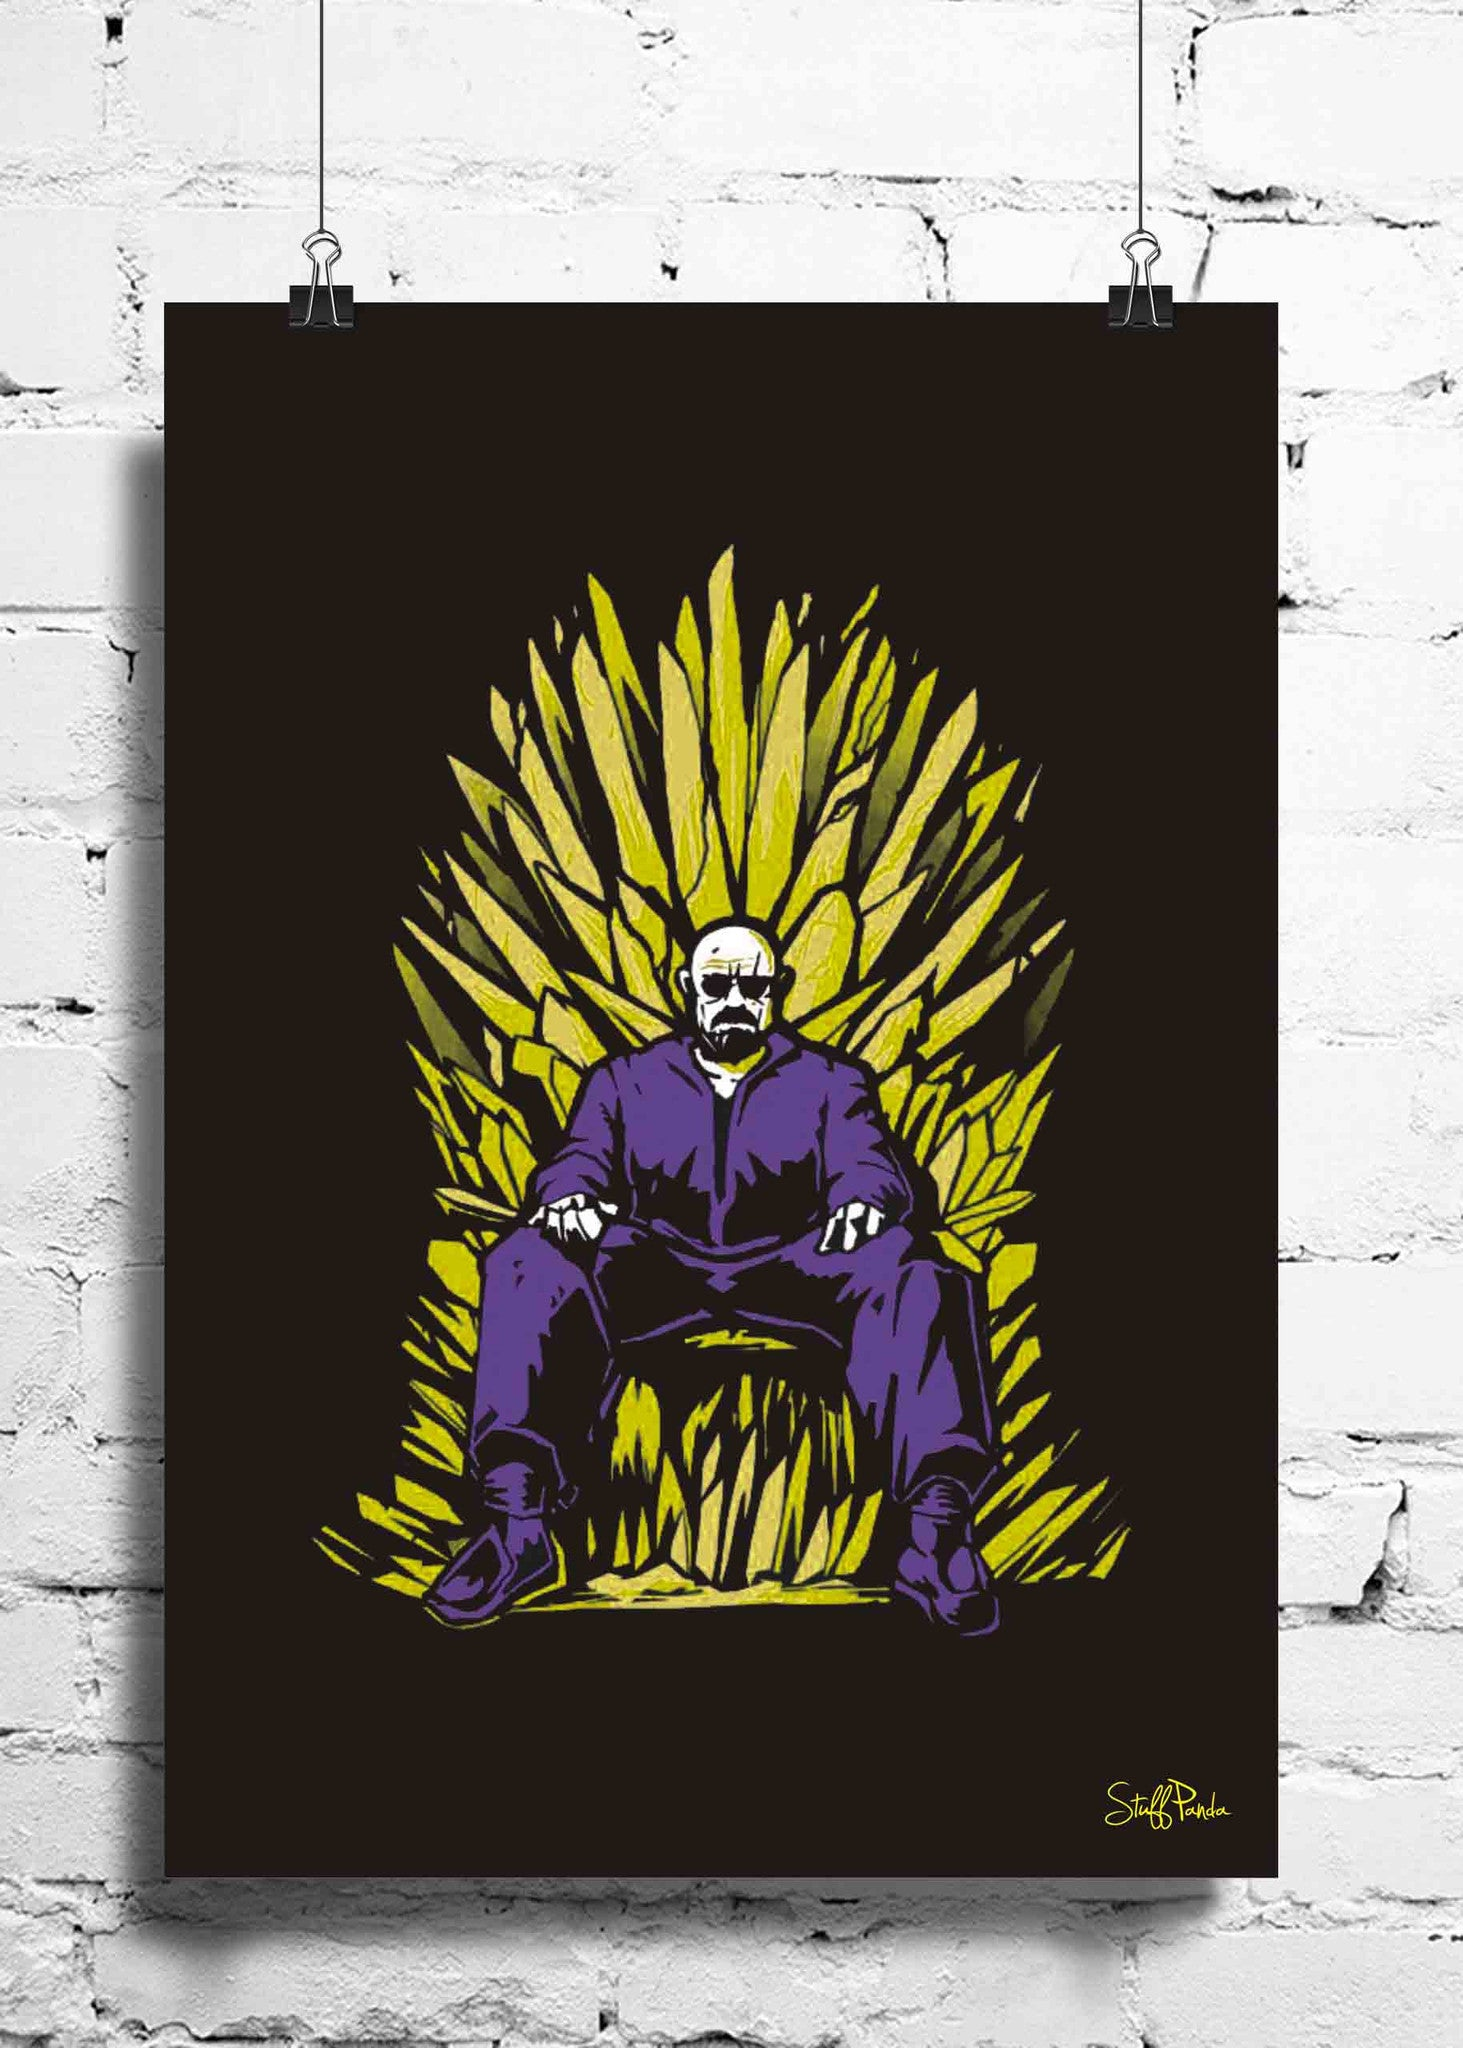 Cool funky breaking bad throne wall posters art prints stickers cool funky breaking bad throne wall posters art prints stickers decals stuffpanda amipublicfo Choice Image